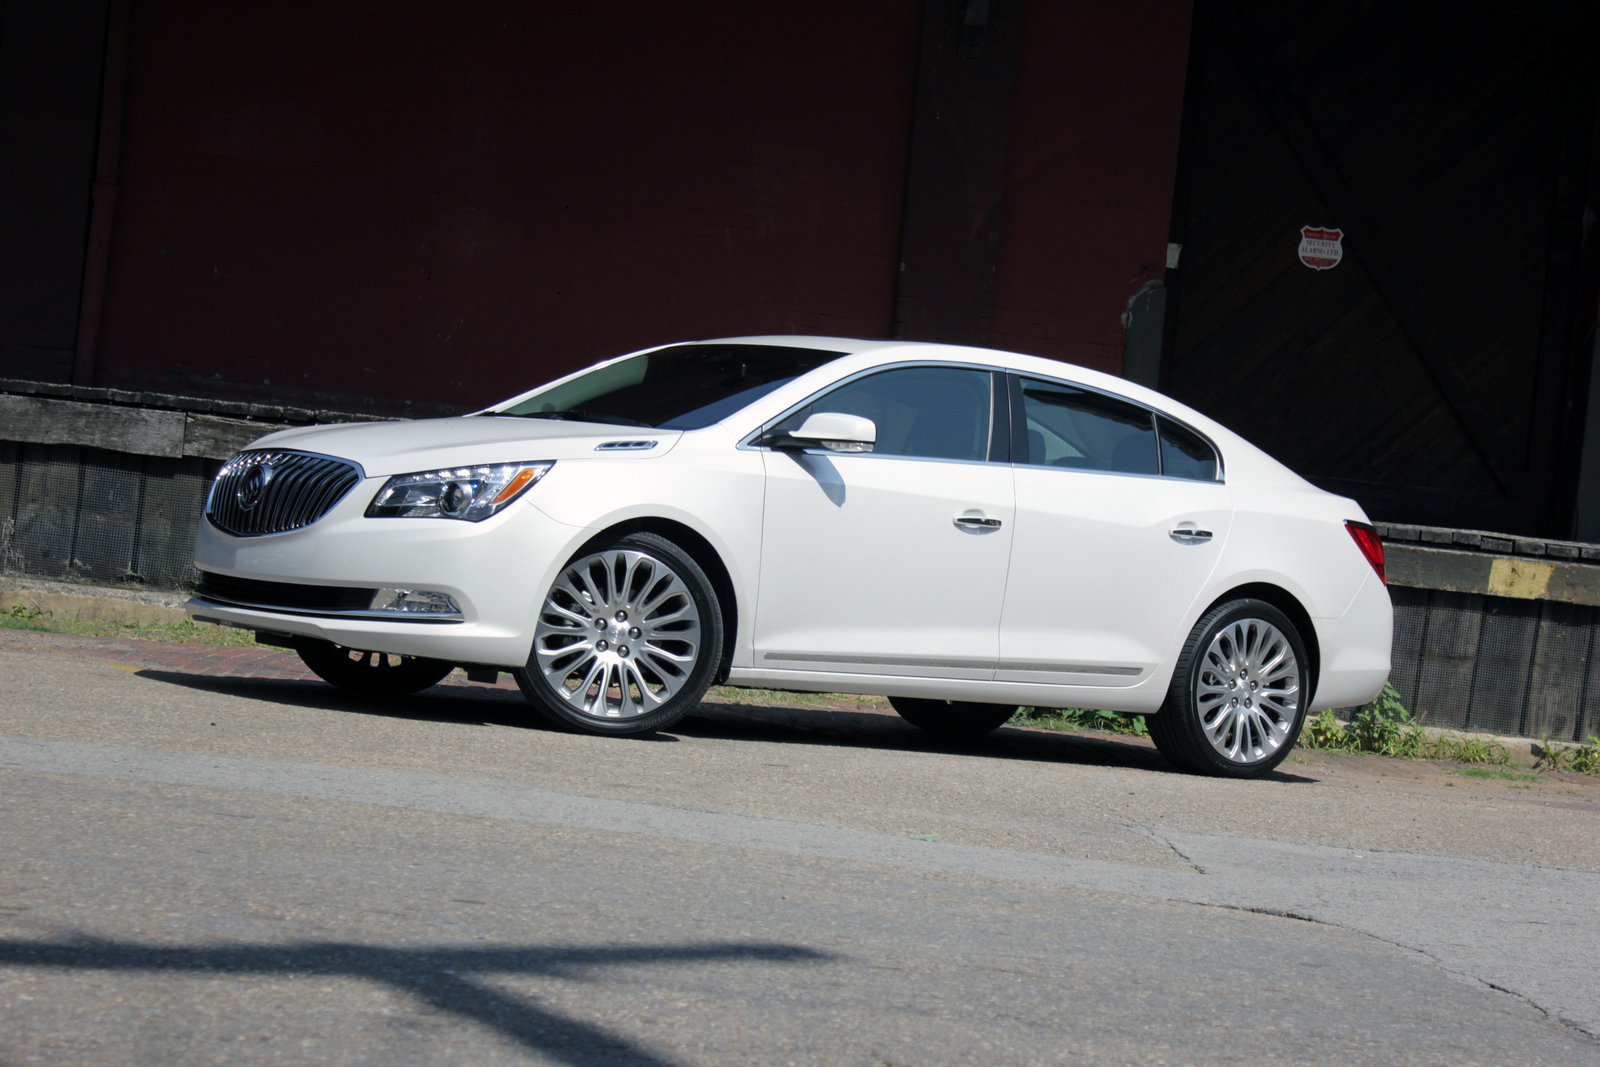 2015 buick lacrosse driven picture 564775 car review top speed. Black Bedroom Furniture Sets. Home Design Ideas